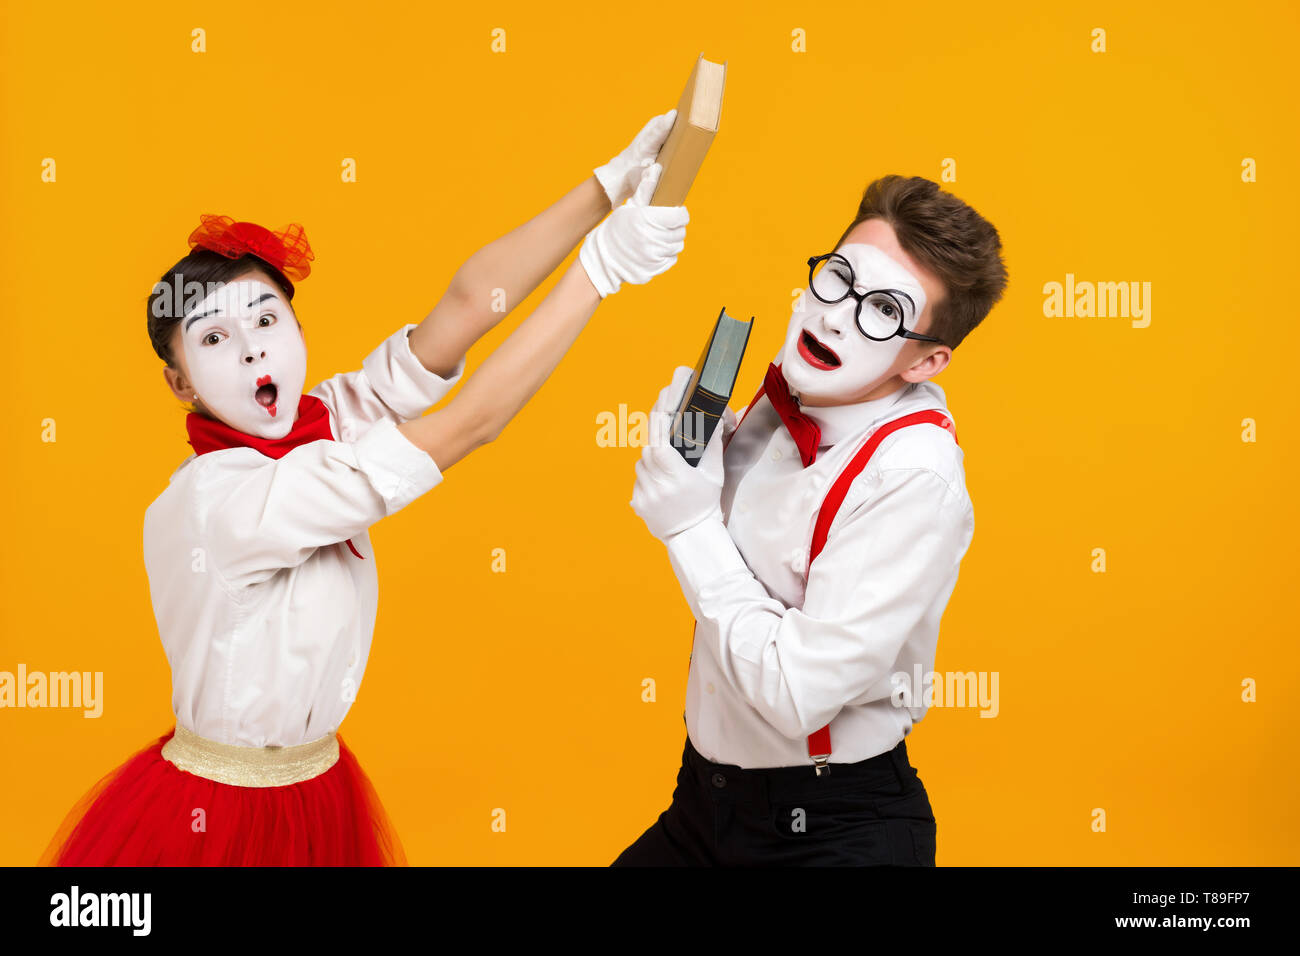 portrait of mime couple artist quarreling and reading book isolated on yellow background - Stock Image